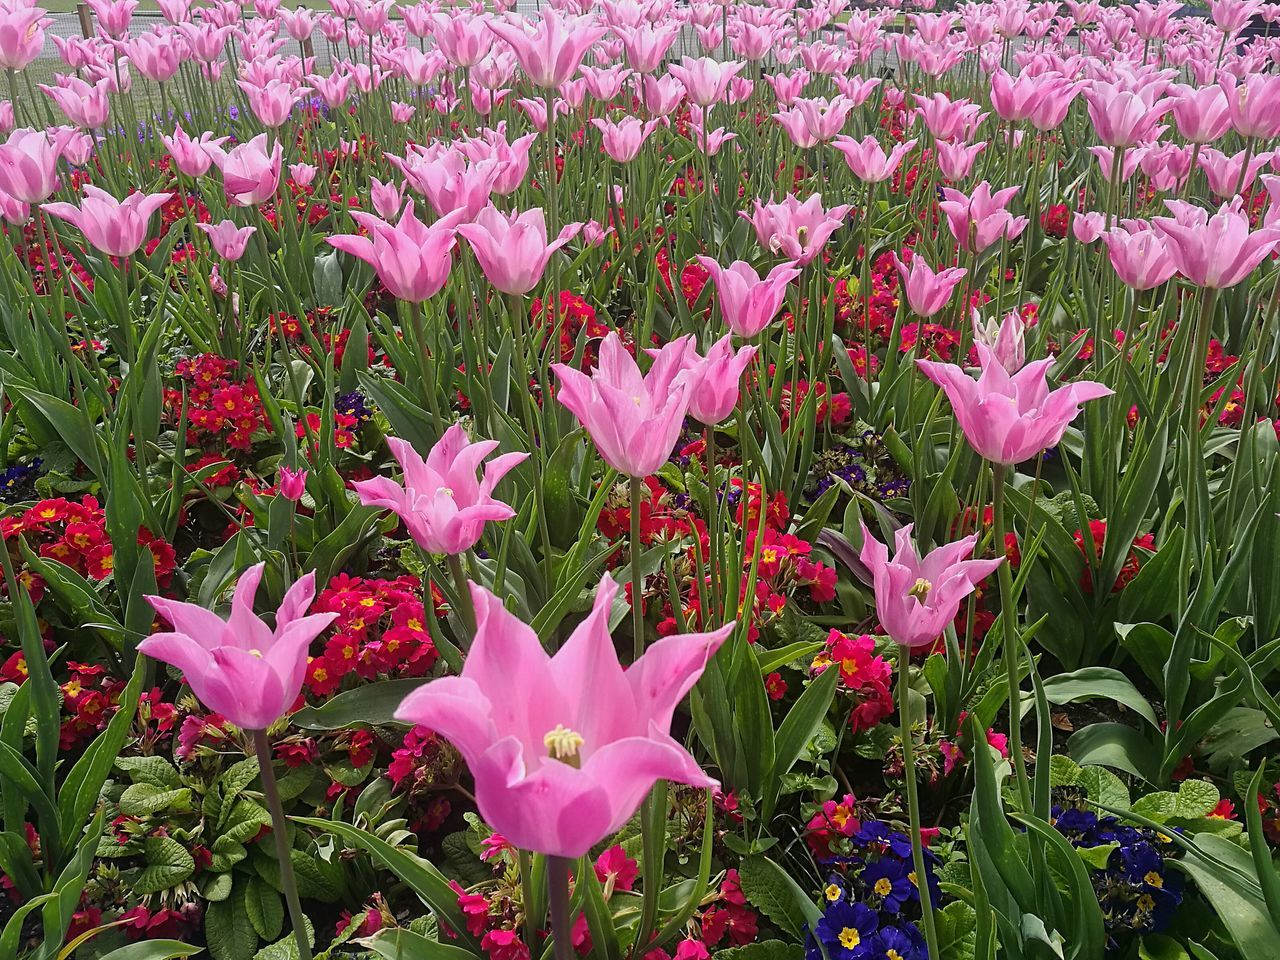 Spring Flowers Love Spring Love Flowers🌷💕 Flower Flowers Smartphonephotography HuaweiP9 Nature Beauty In Nature Growth Petal Tulip Tulips🌷 Tulips Pink Tulips Pink Color Pink Pink Flower Pink Flowers Blooming Blooms Pink Blooms Outdoors Close-up Kew Gardens, London